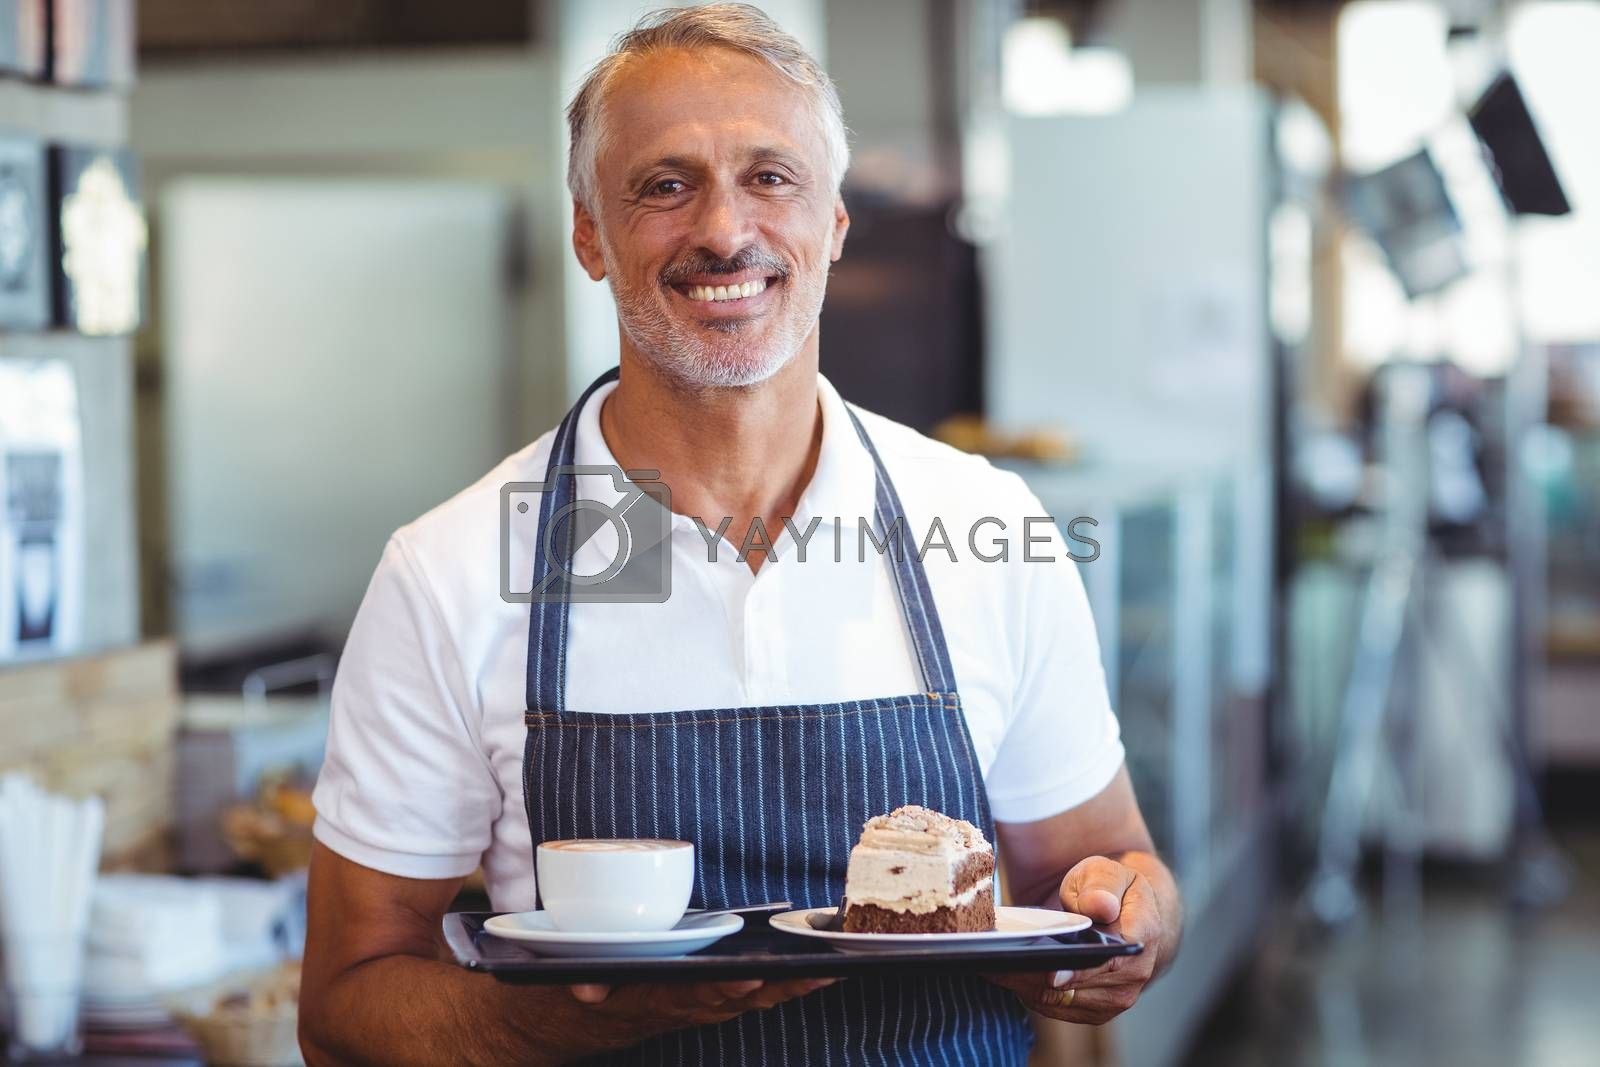 Royalty free image of waiter smiling and holding tray by Wavebreakmedia